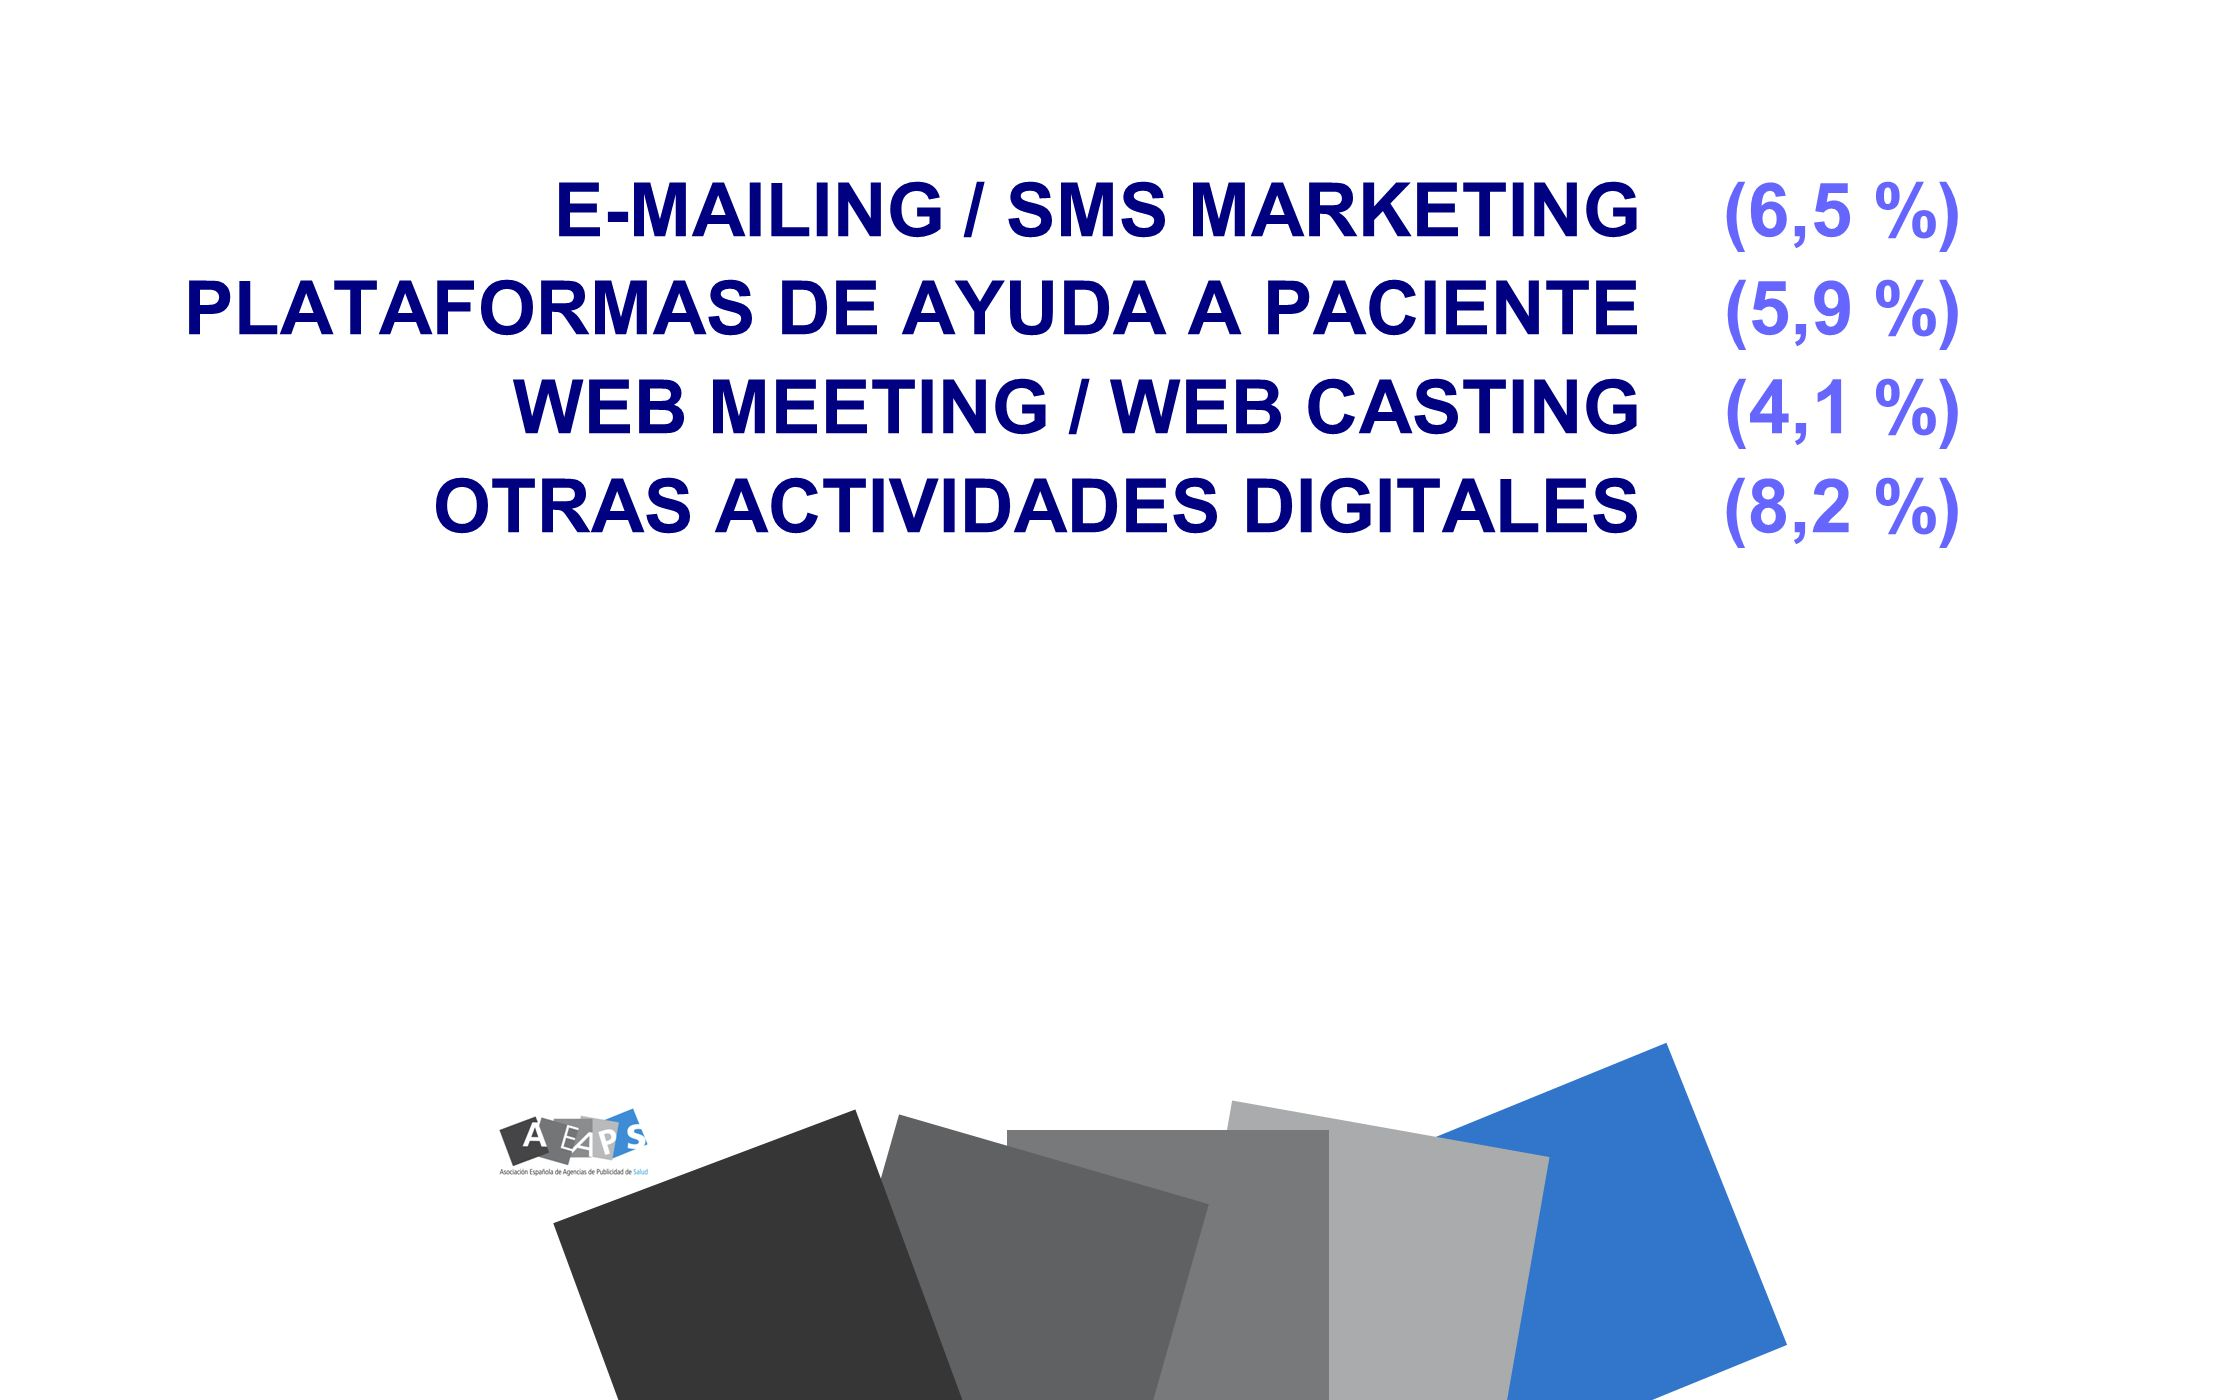 E-MAILING / SMS MARKETING (6,5 %)